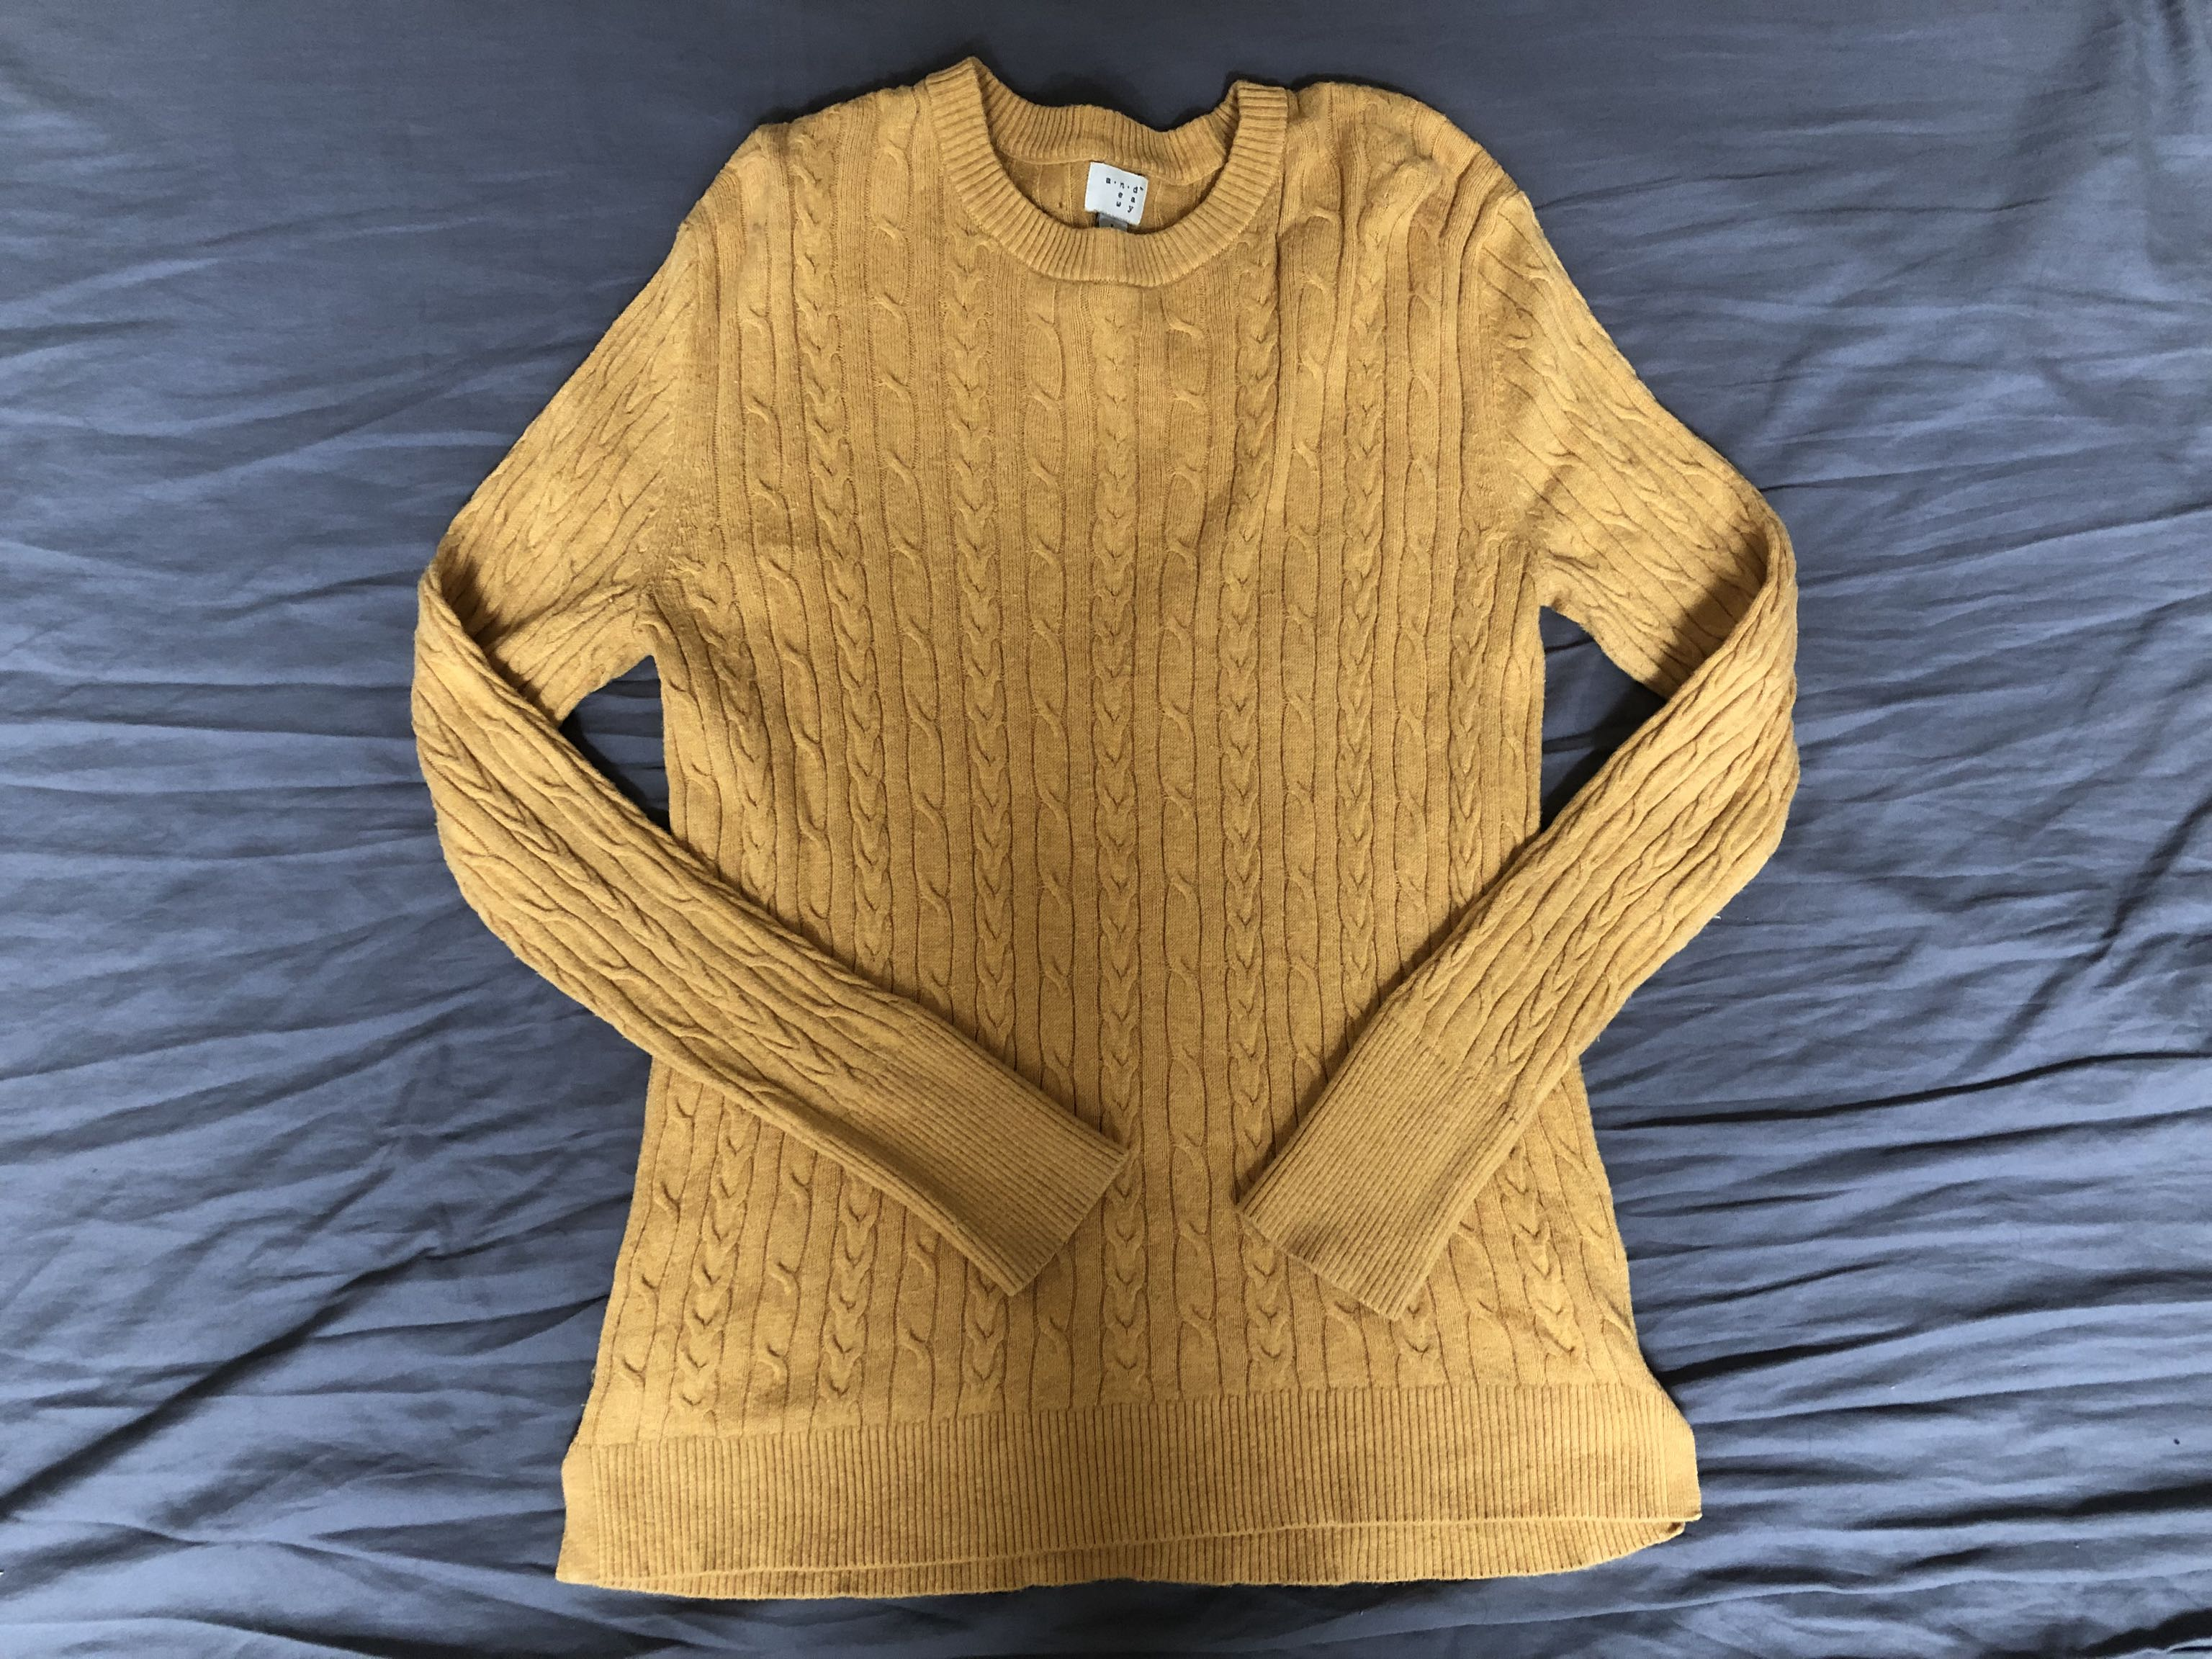 Women's sweater size large. Worn twice